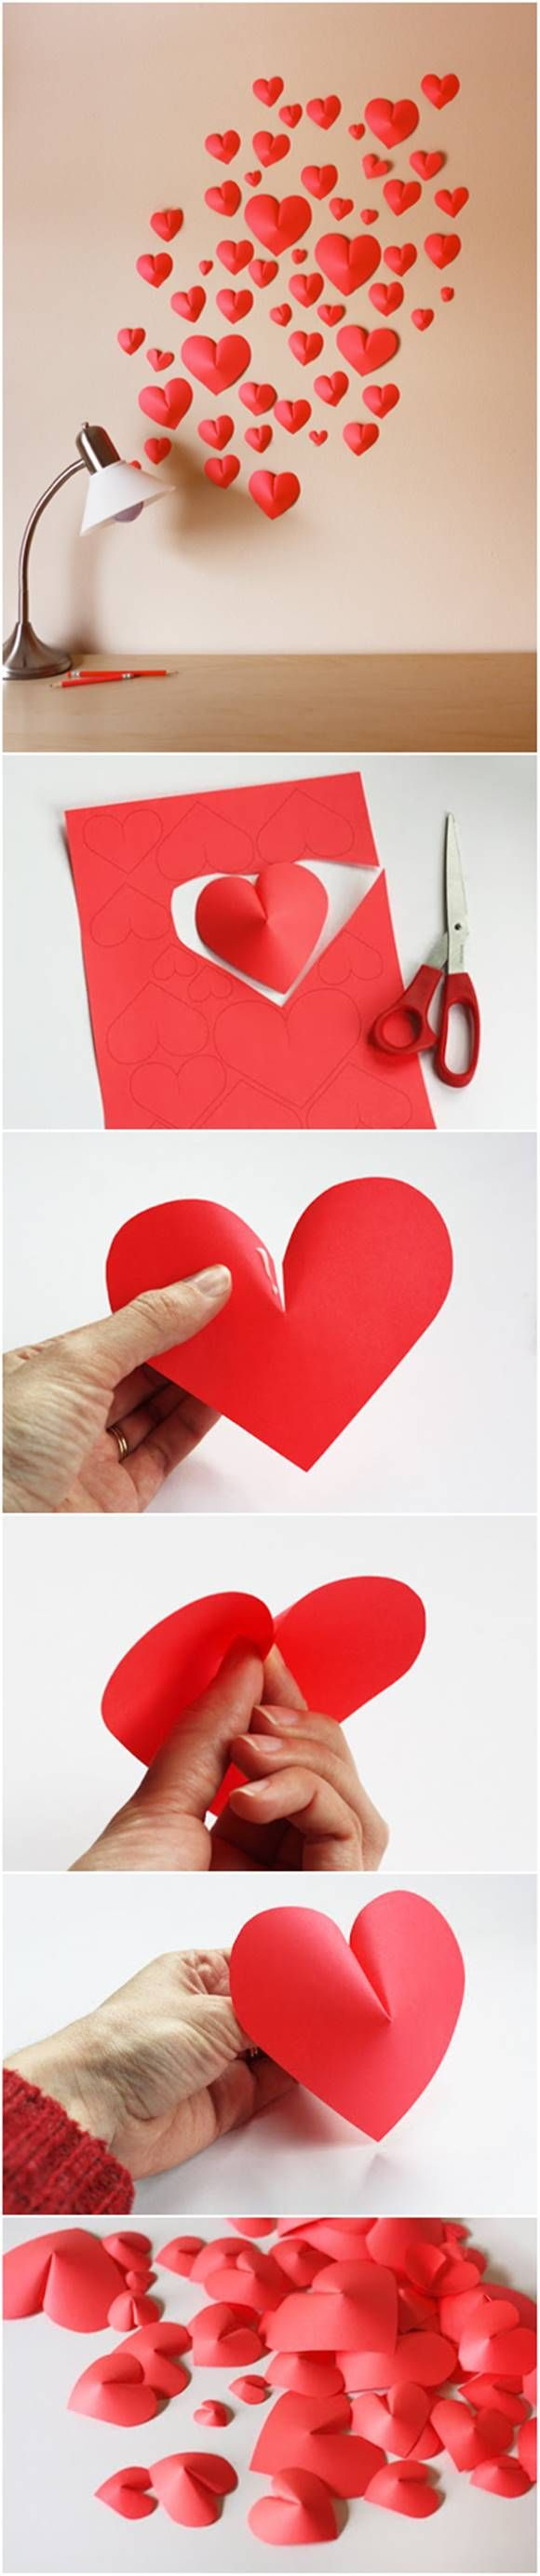 How to Make Paper Hearts Wall Decor #craft #decor #paper